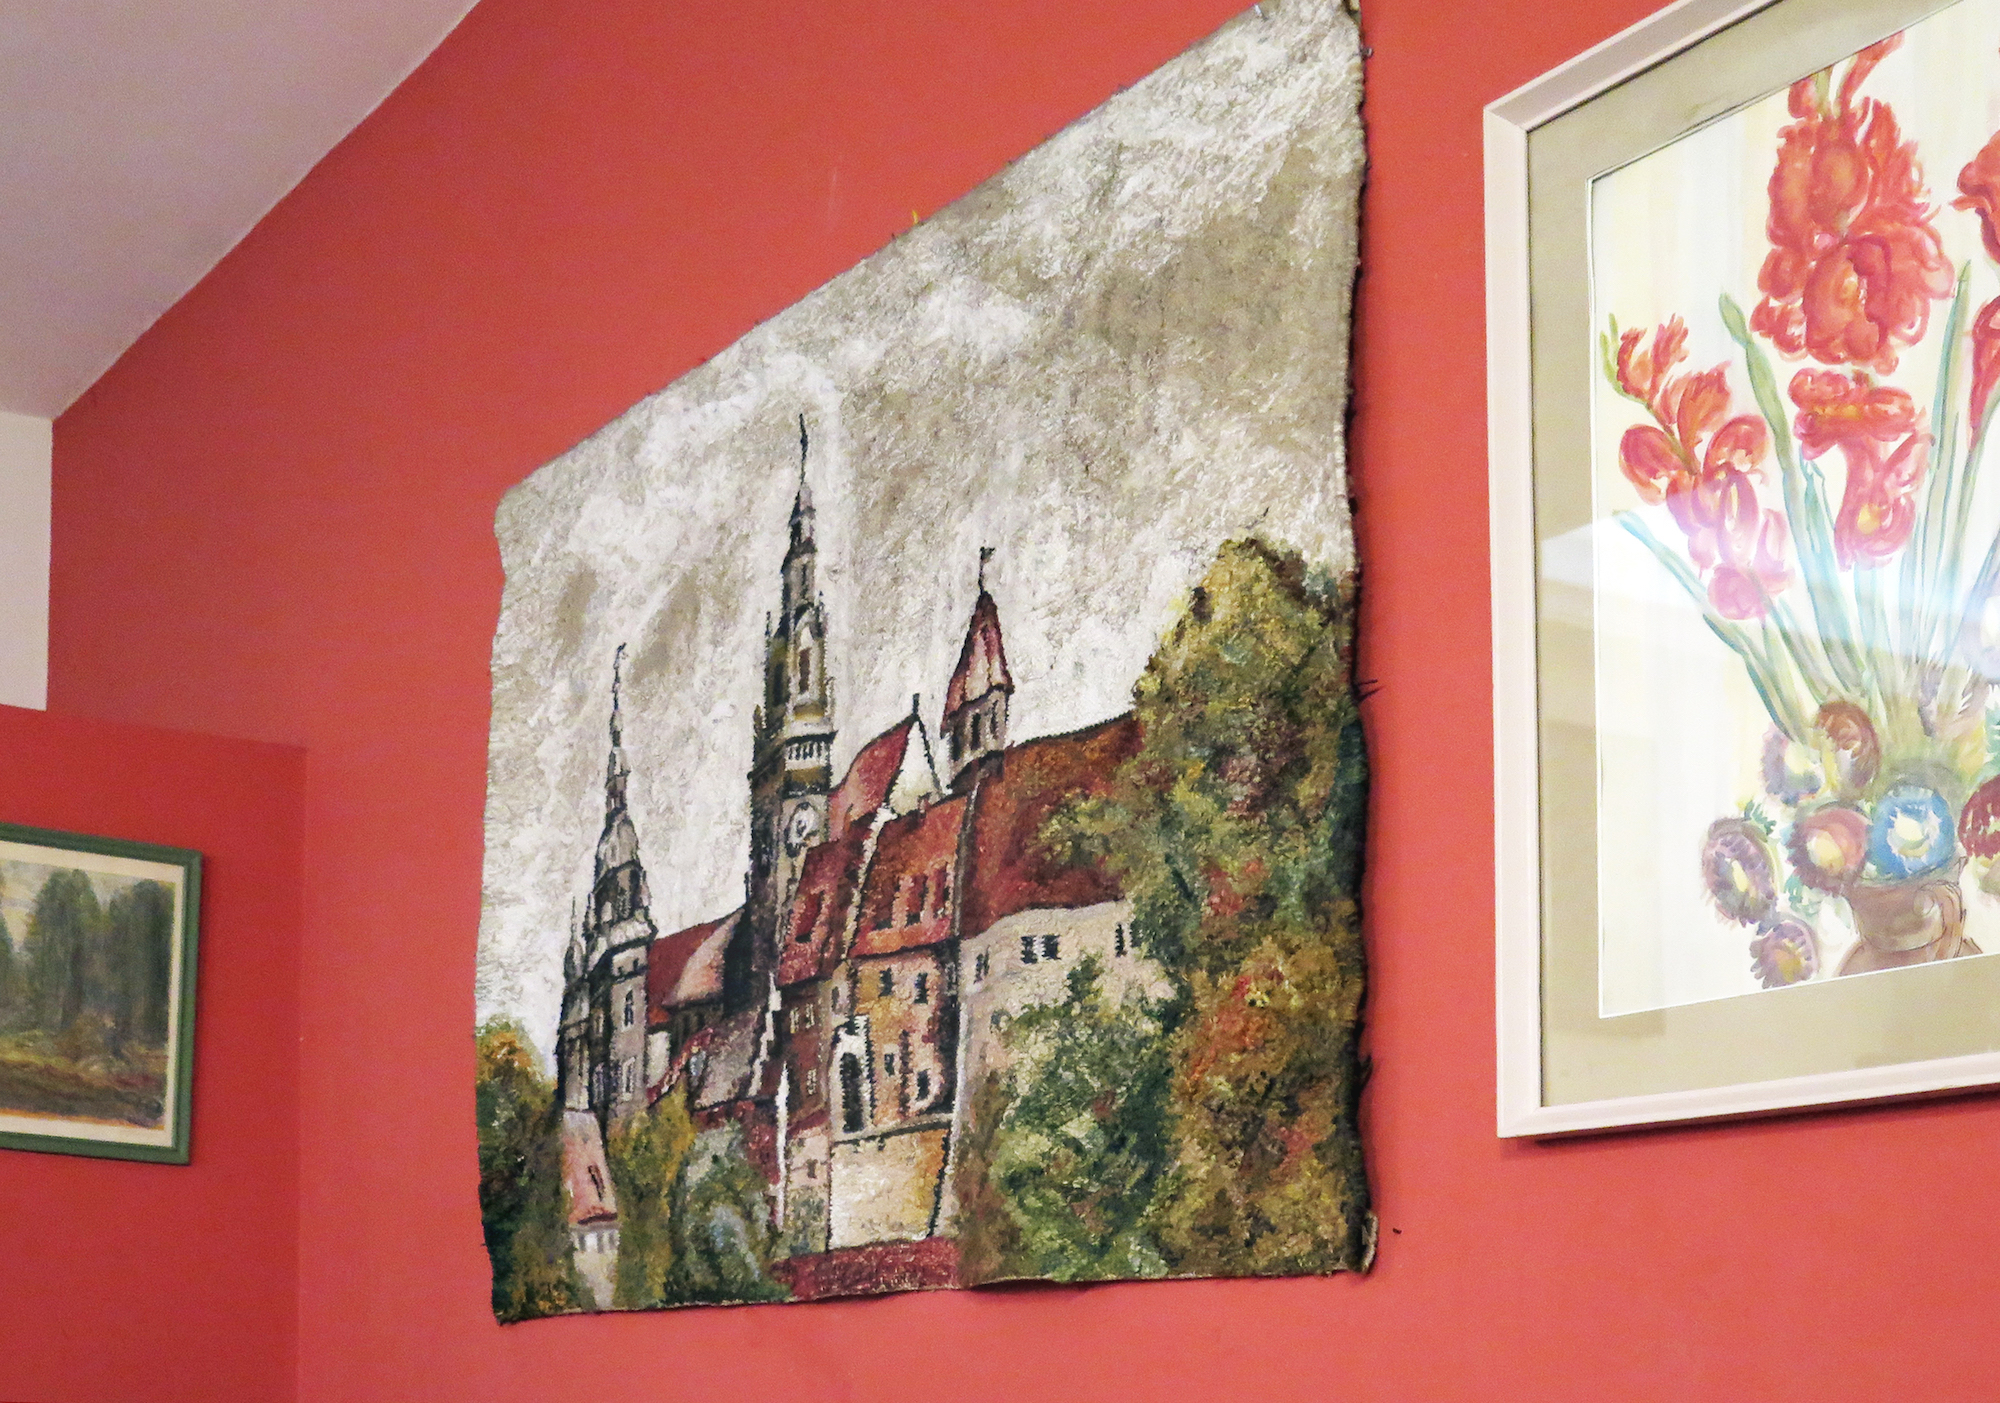 A hand-stitched mural of Krakow's old town